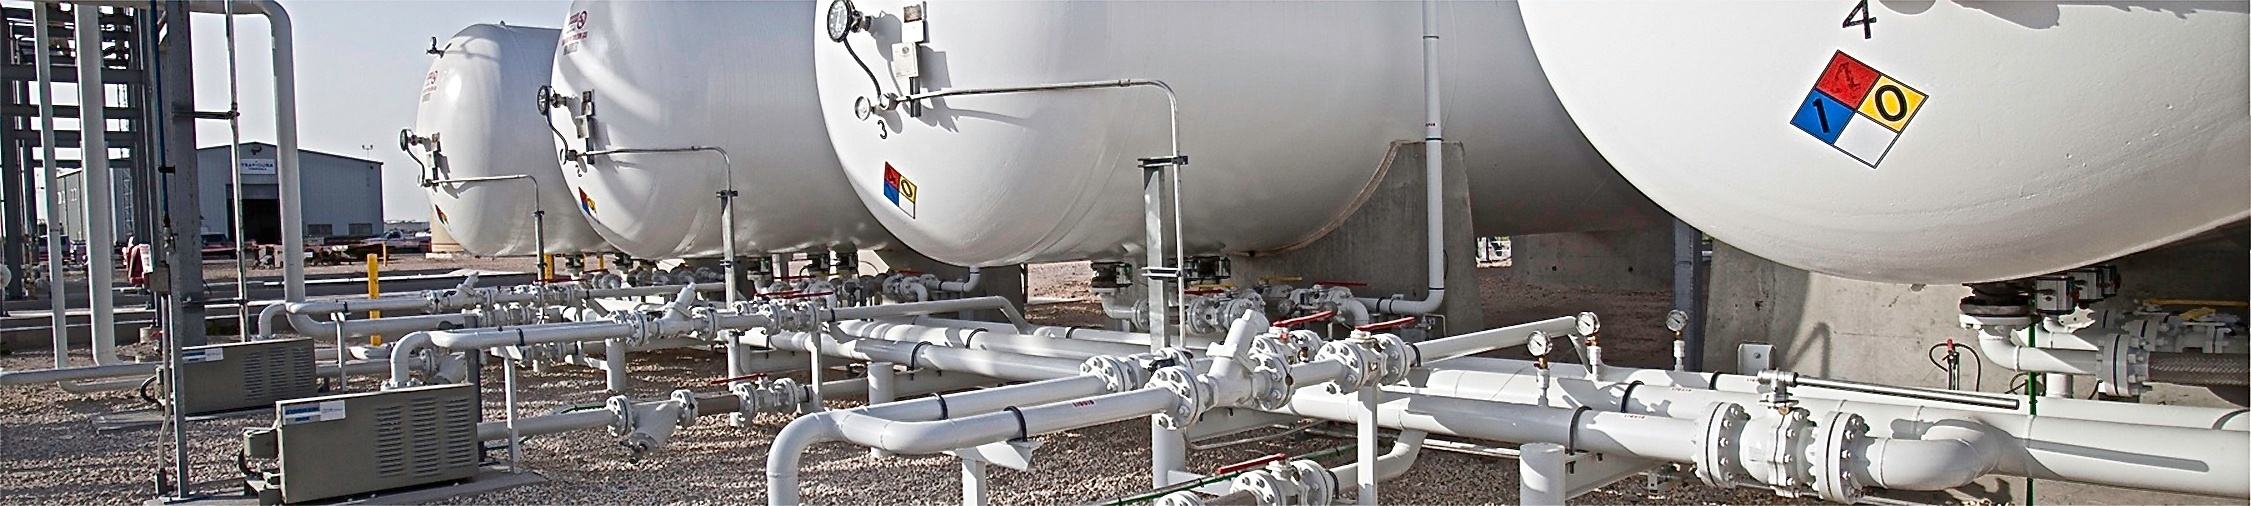 LPG Propane Bulk Plant Engineering Construction Services___.jpg